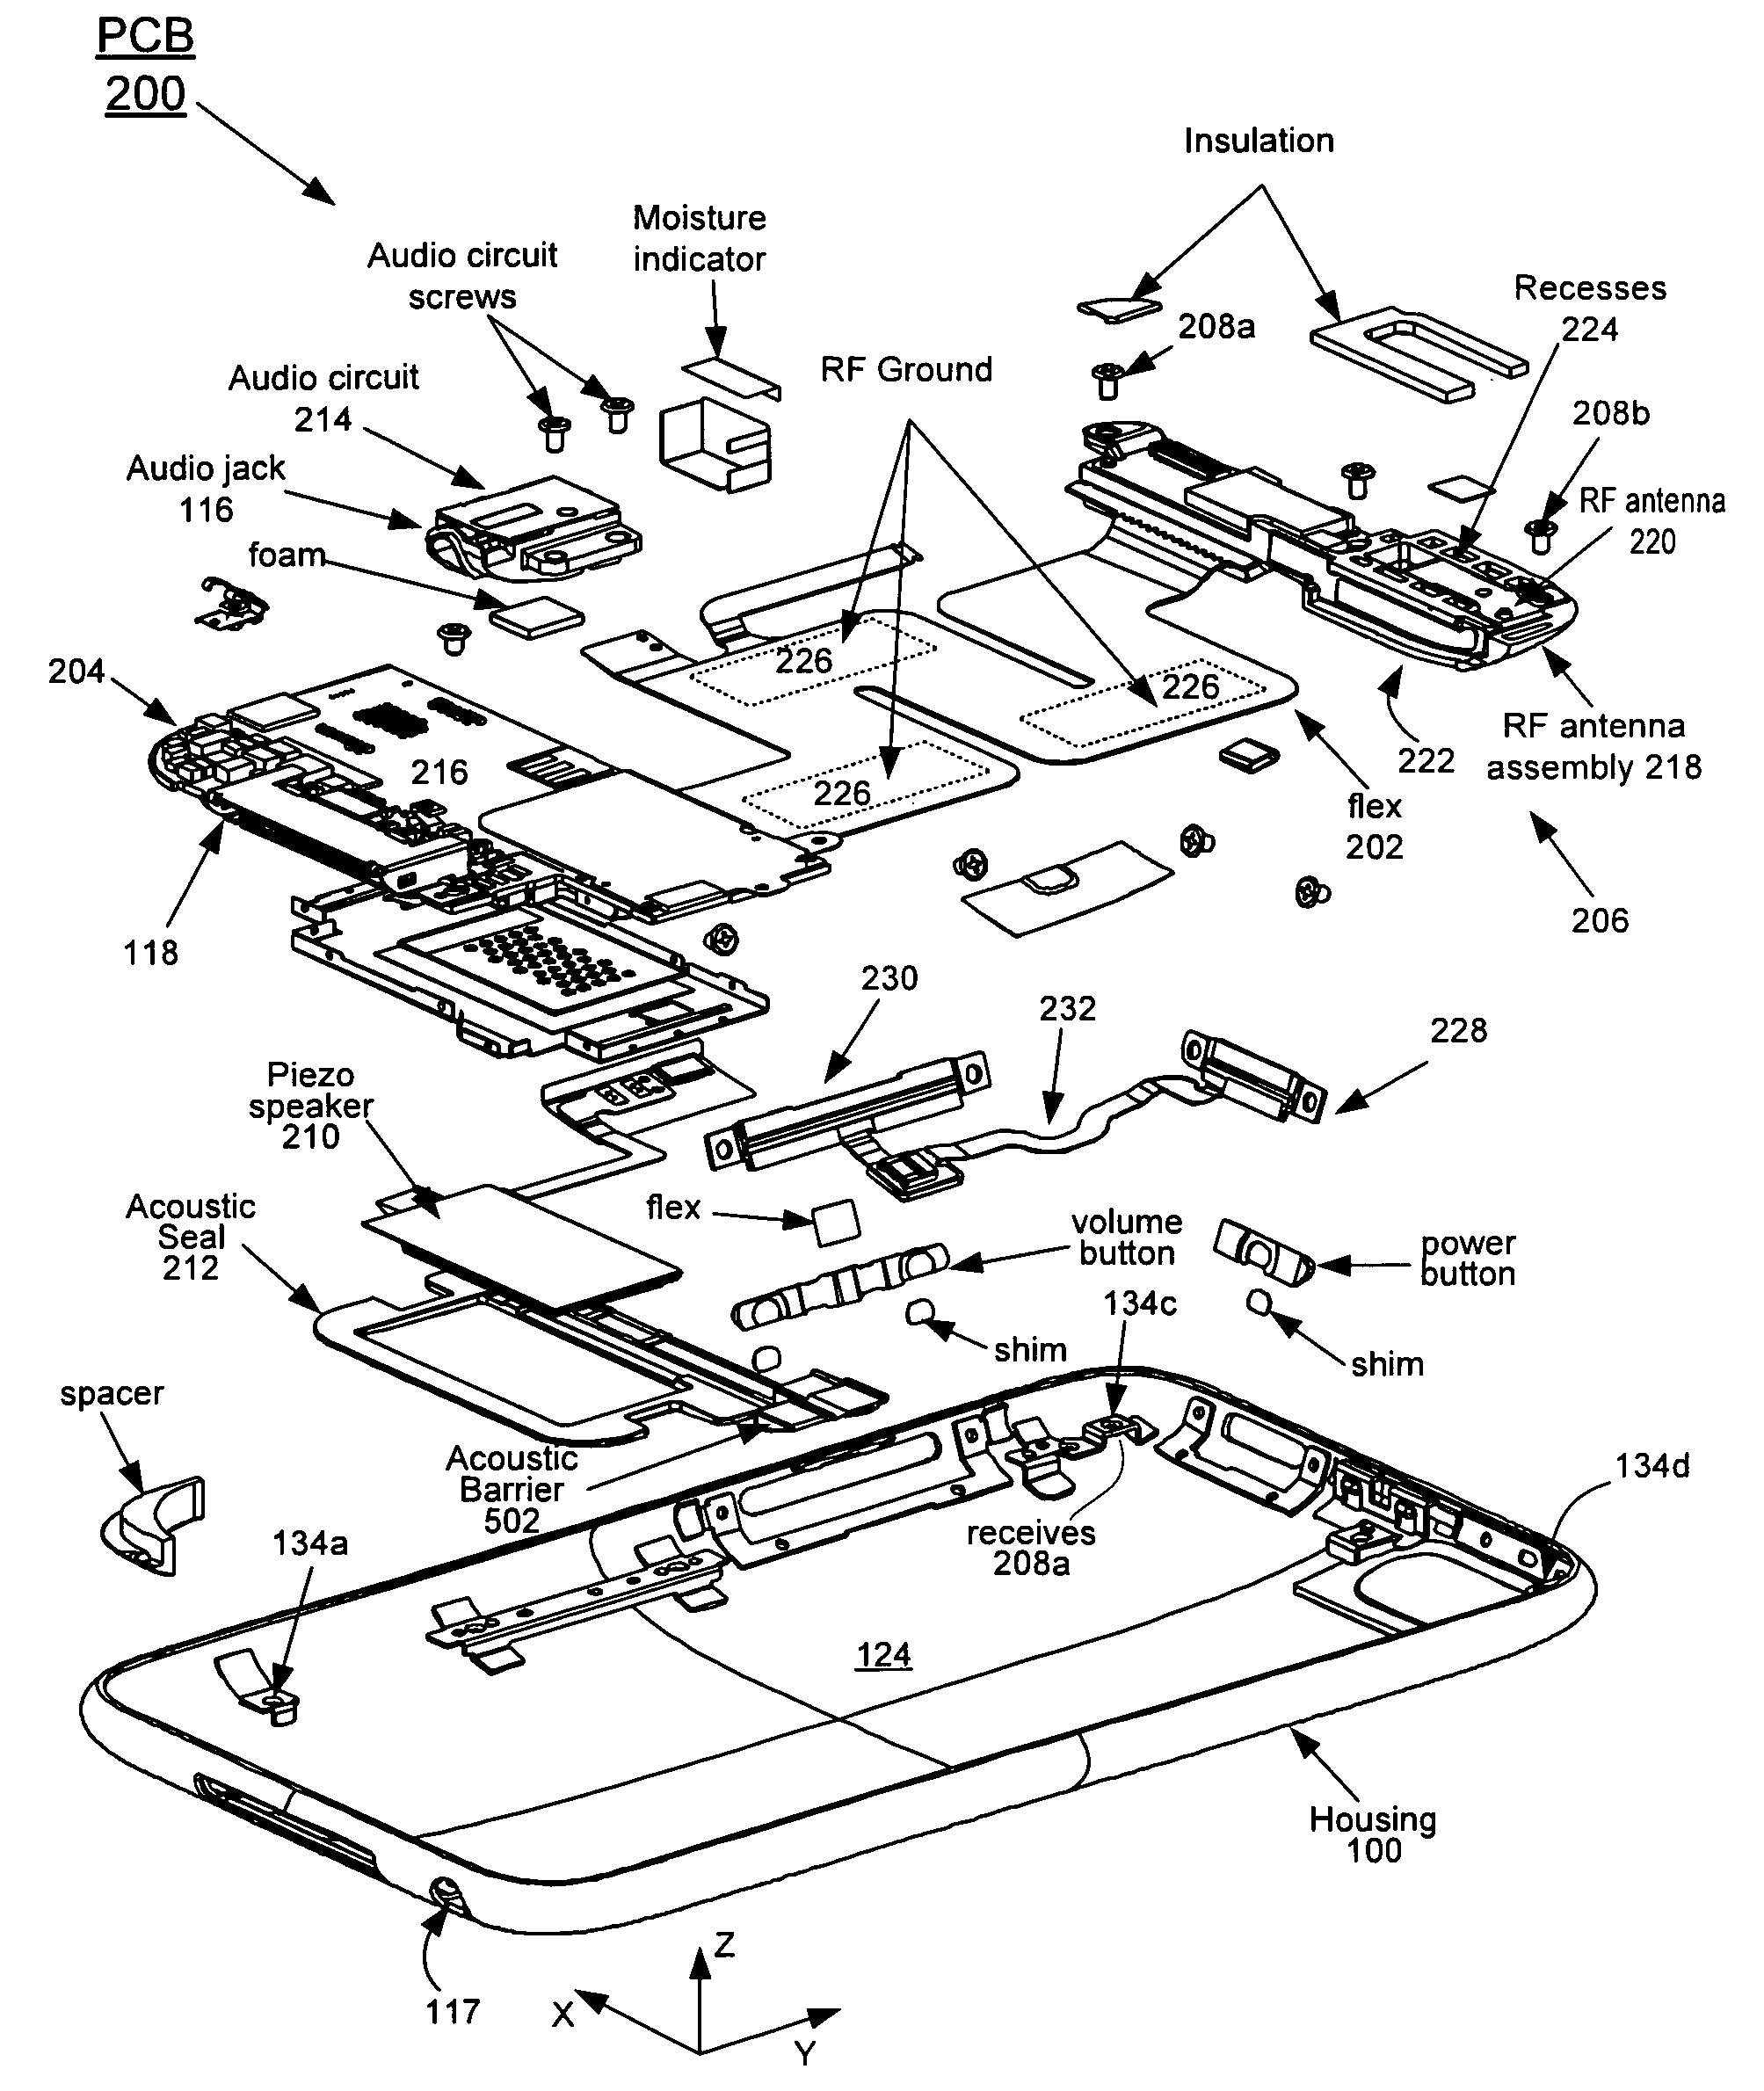 small iphone 5s parts diagram imageresizertoolcom With iphone 4 parts diagram in addition exploded parts diagram for iphone 5